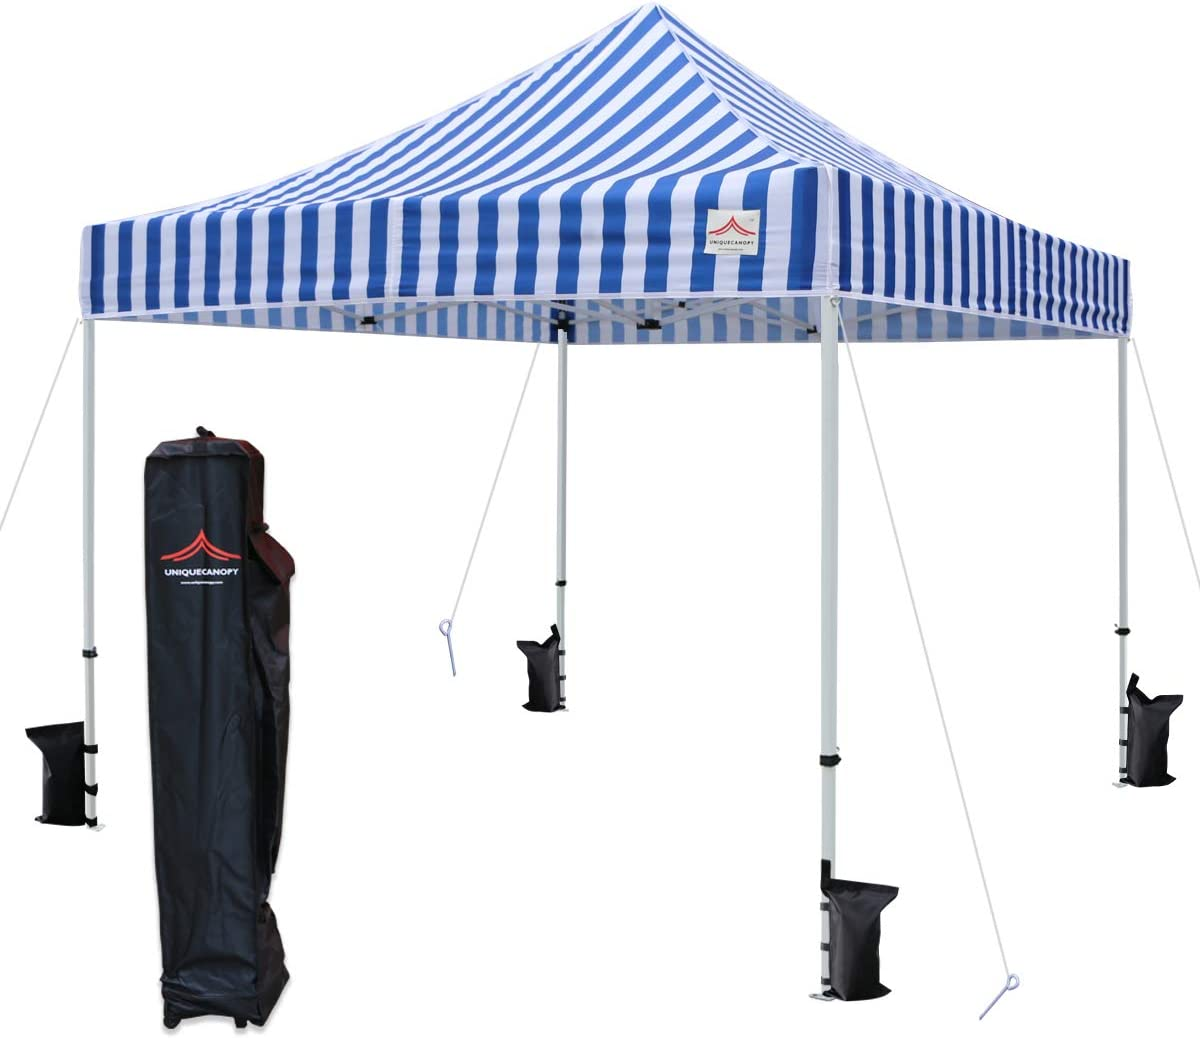 UNIQUECANOPY 10 x10 Ez Pop Up Canopy Tent Commercial Instant Shelter with Heavy Duty Roller Bag, 4 Canopy Sand Bags, 10×10 FT Blue White Strip